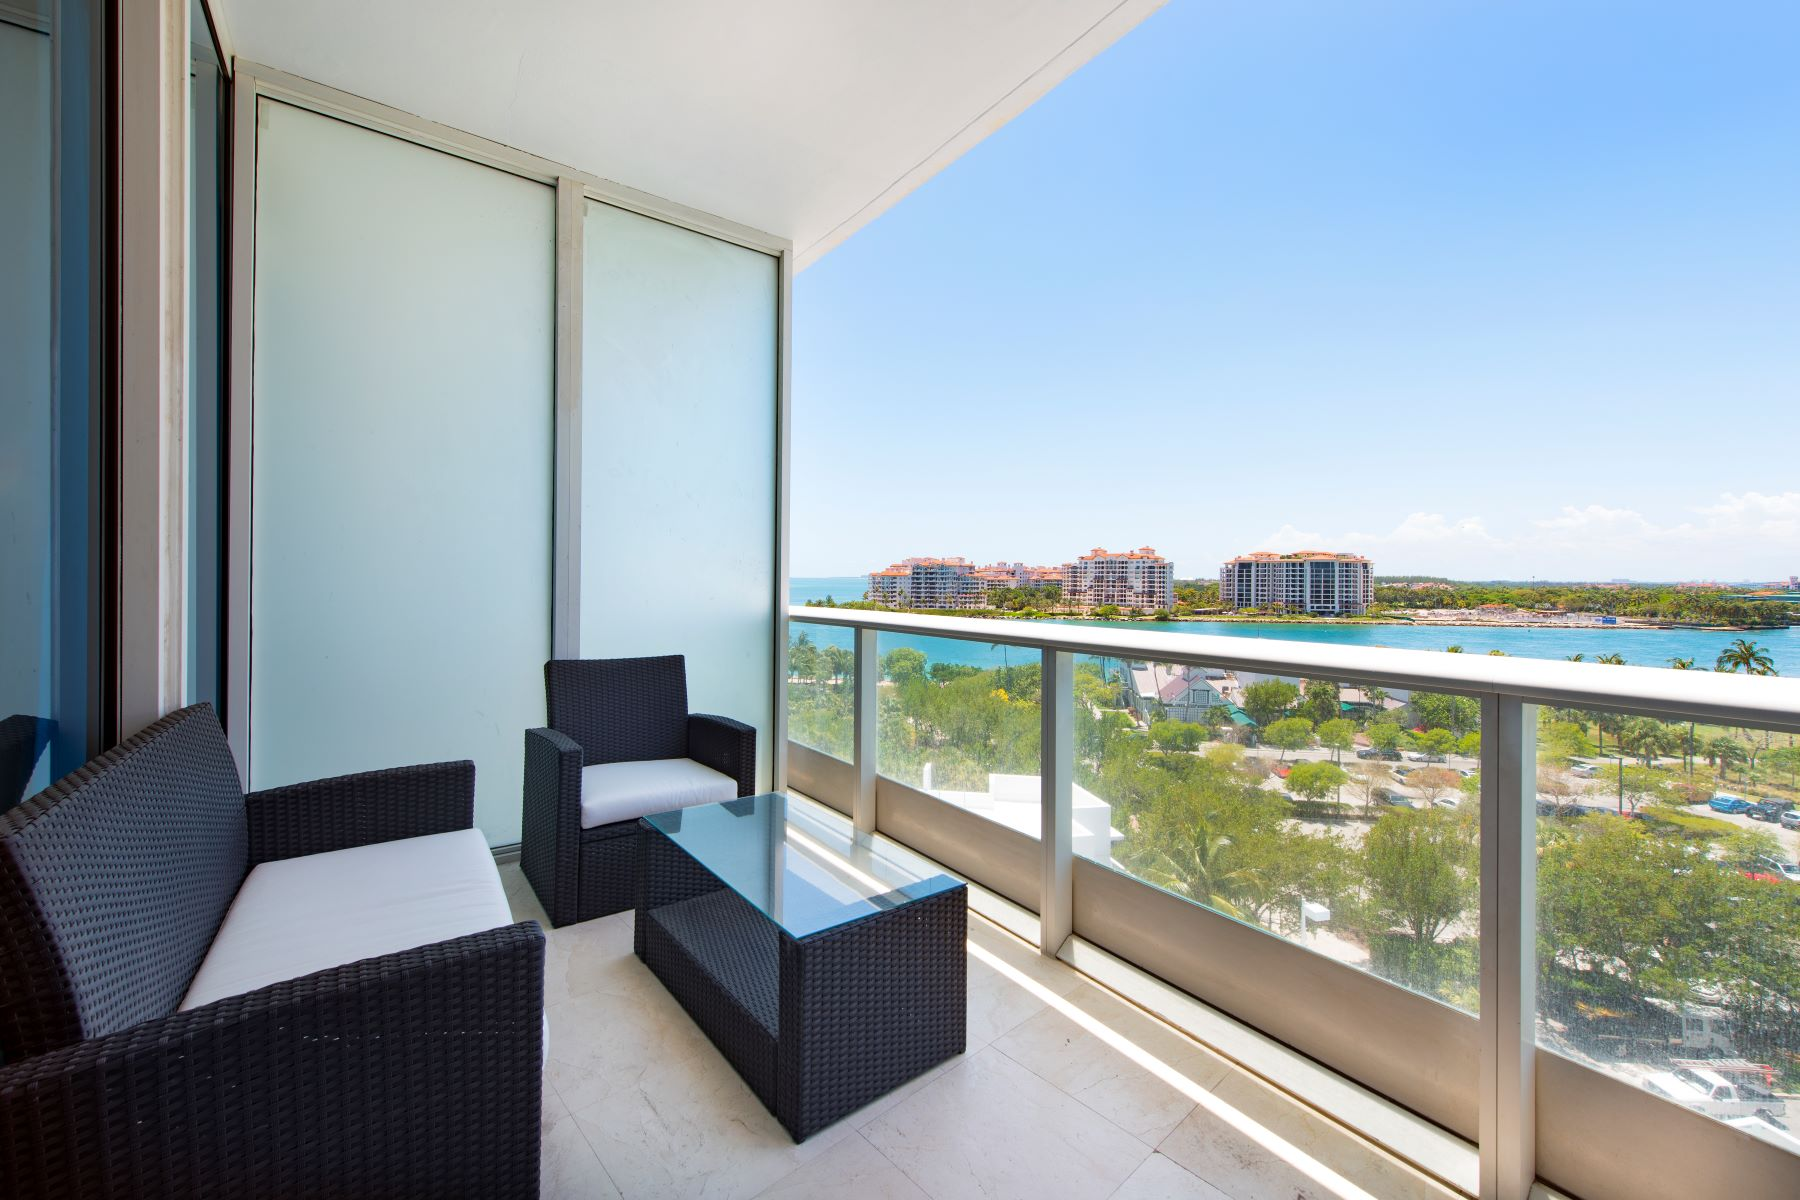 Condominium for Sale at 100 S Pointe Dr #802 100 S Pointe Dr 802 Miami Beach, Florida, 33139 United States